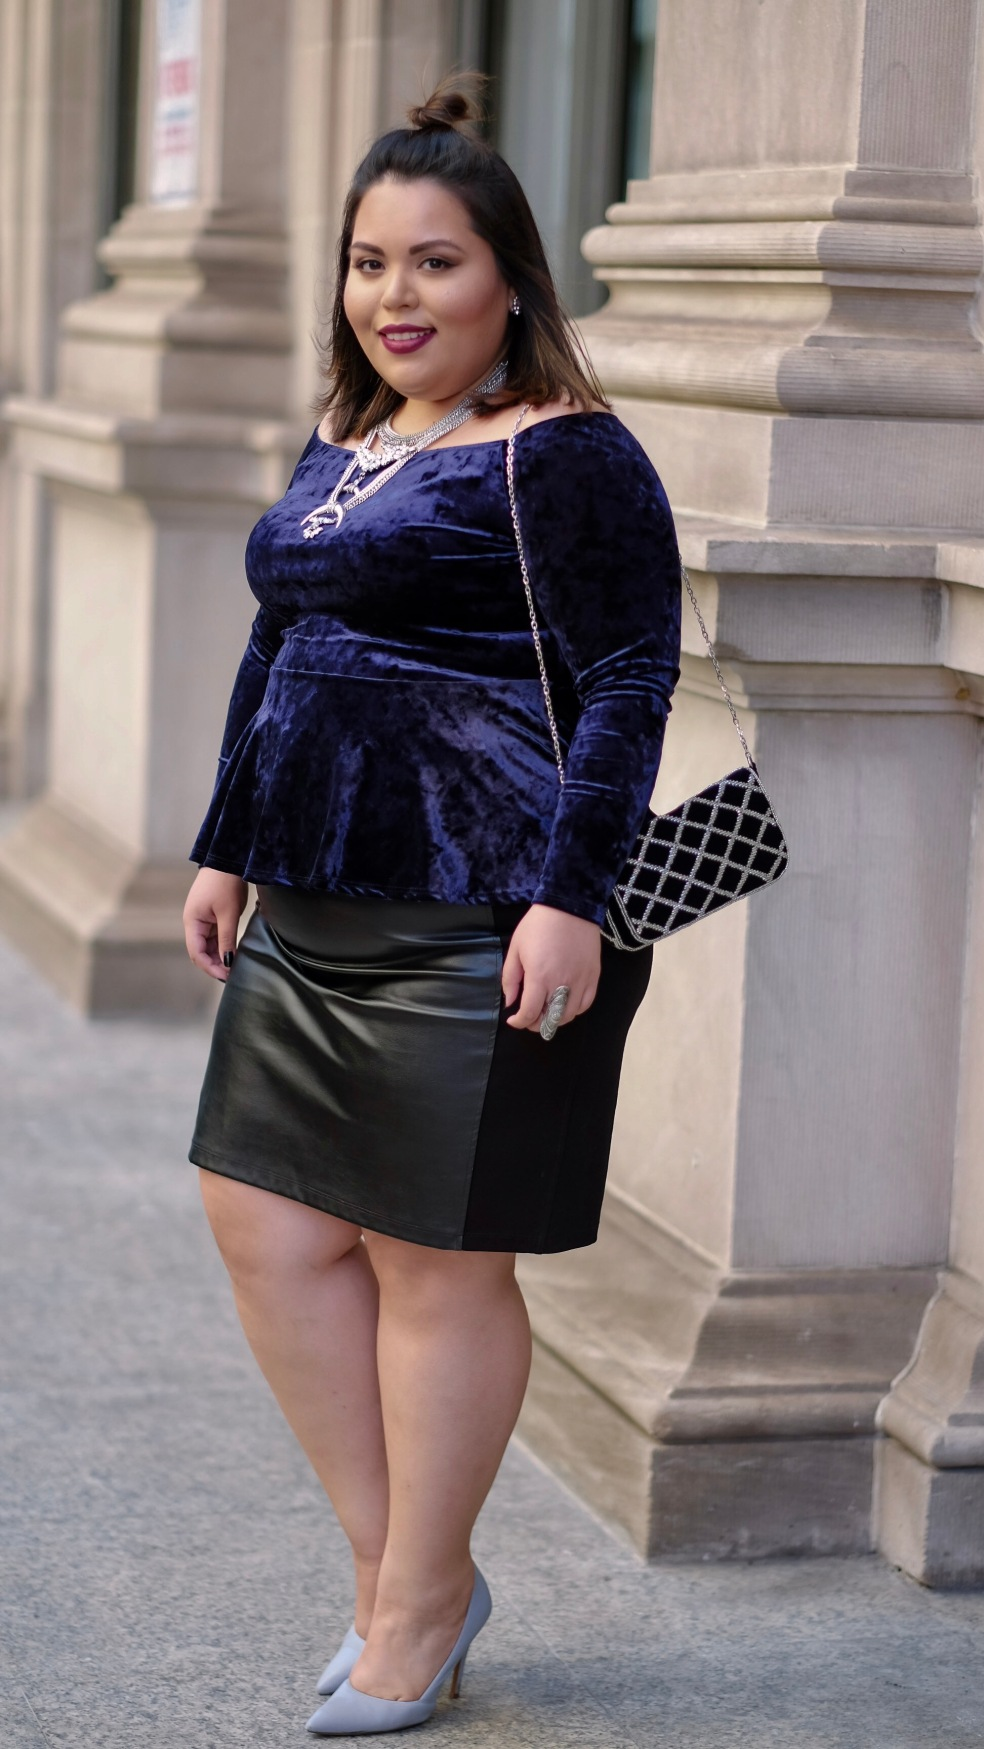 Plus Size Holiday Street Style in Miami featuring Blue Velvet and Faux Leather